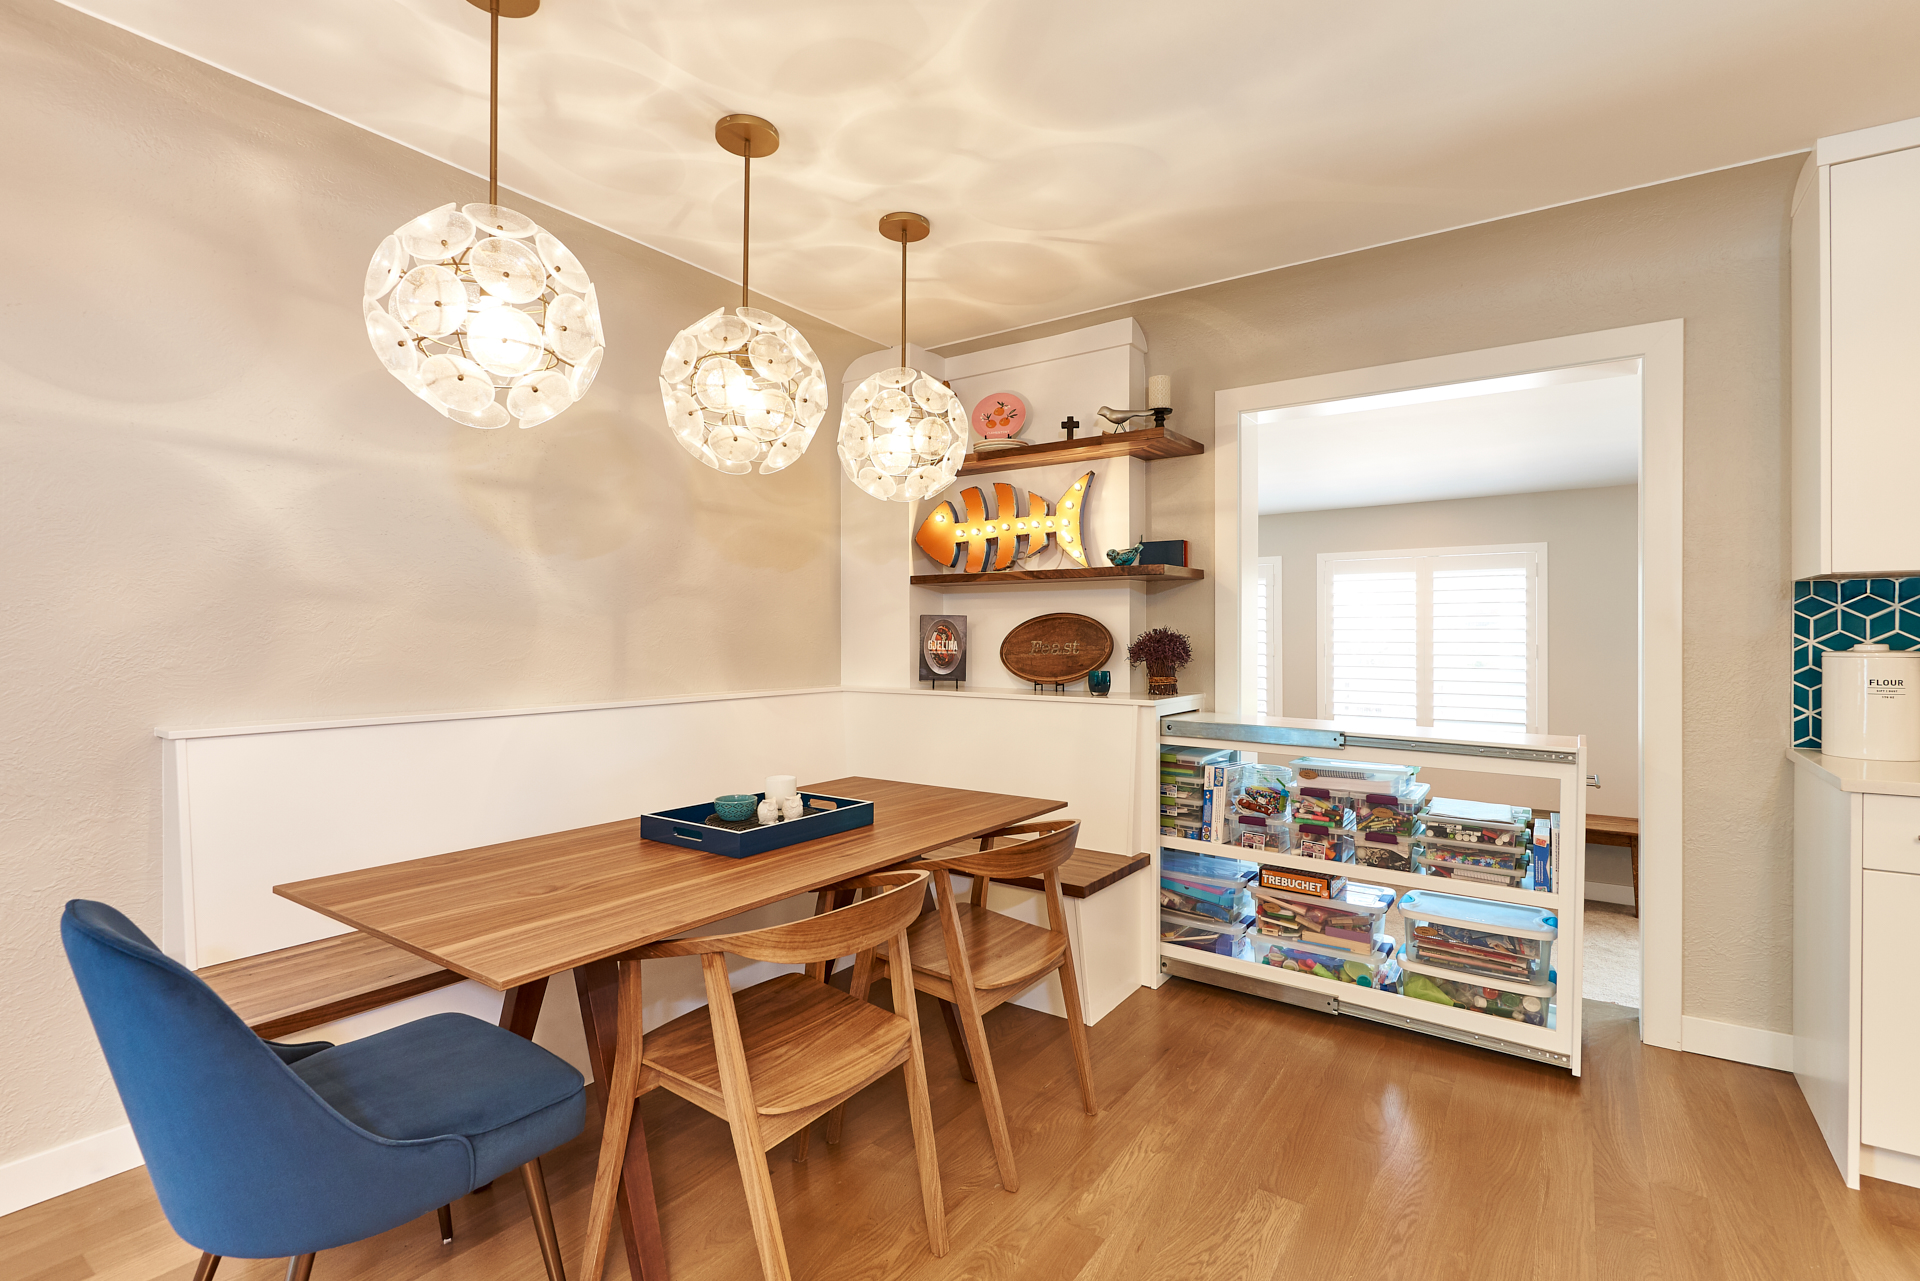 custom built-in with bench seating and oversize storage walnut and display shelves white pendant lights in kitchen